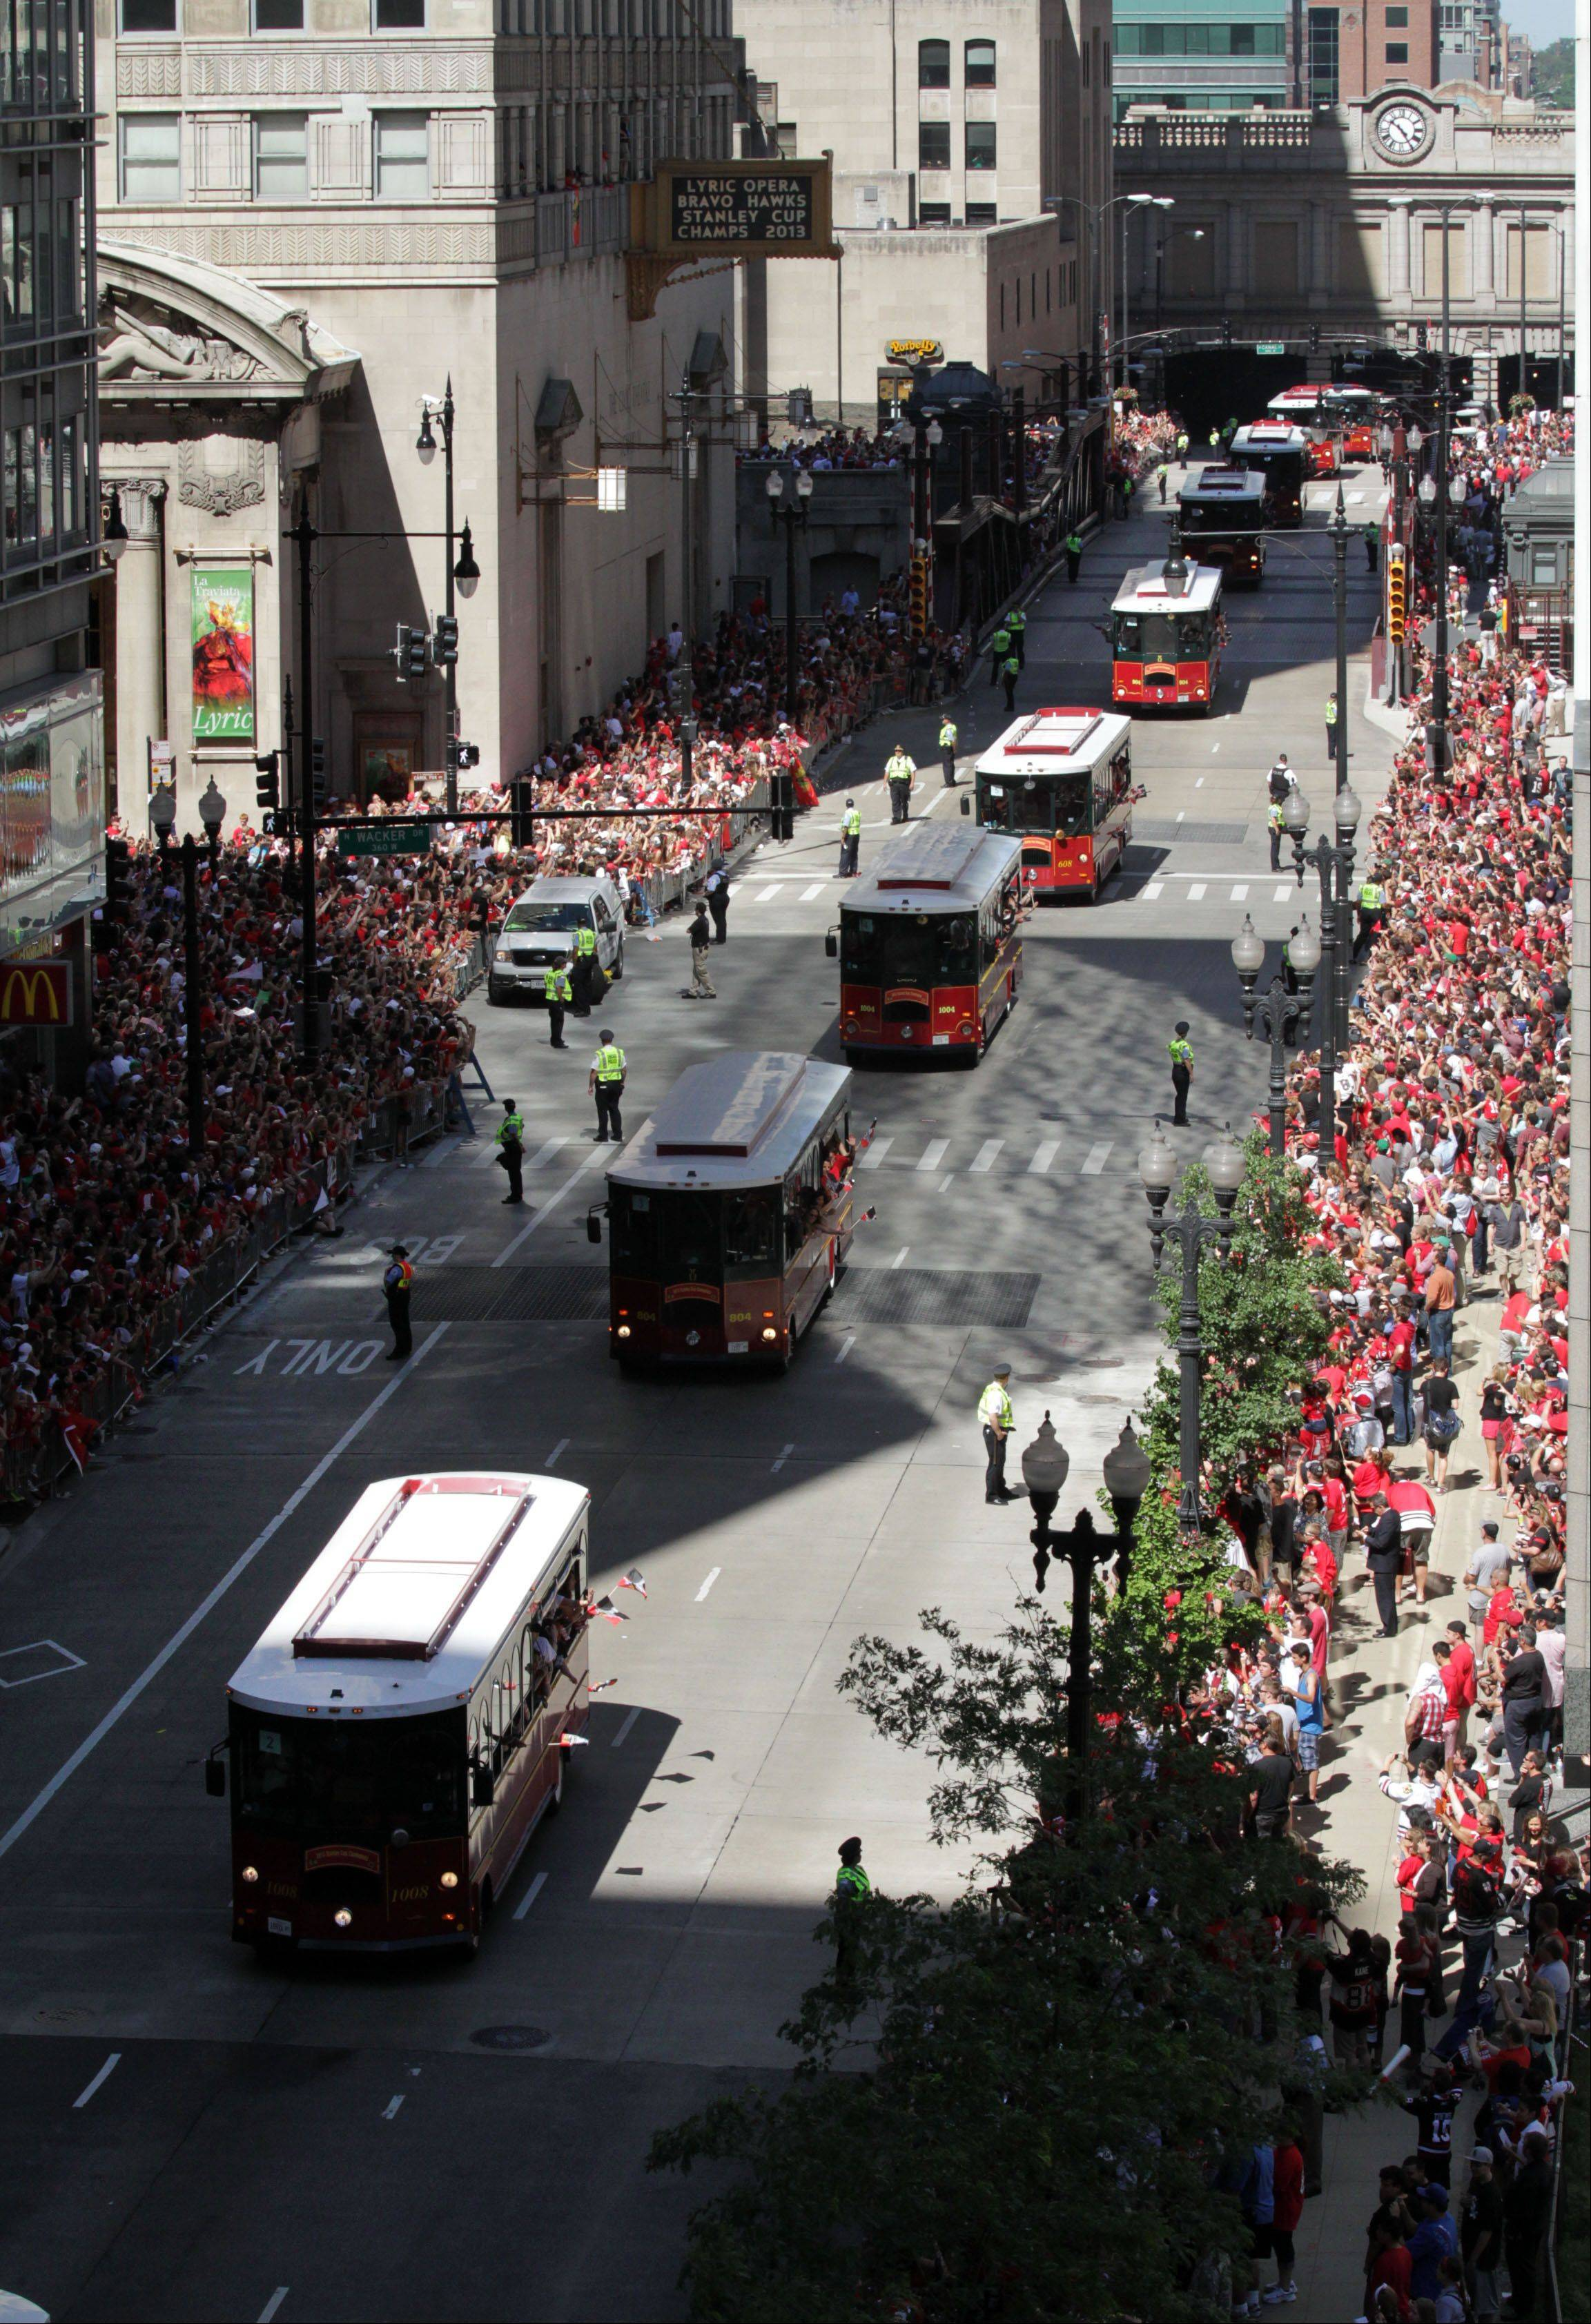 Trolleys carrying family members travel ahead of the Blackhawks parade on Washington Street in Chicago on Friday.